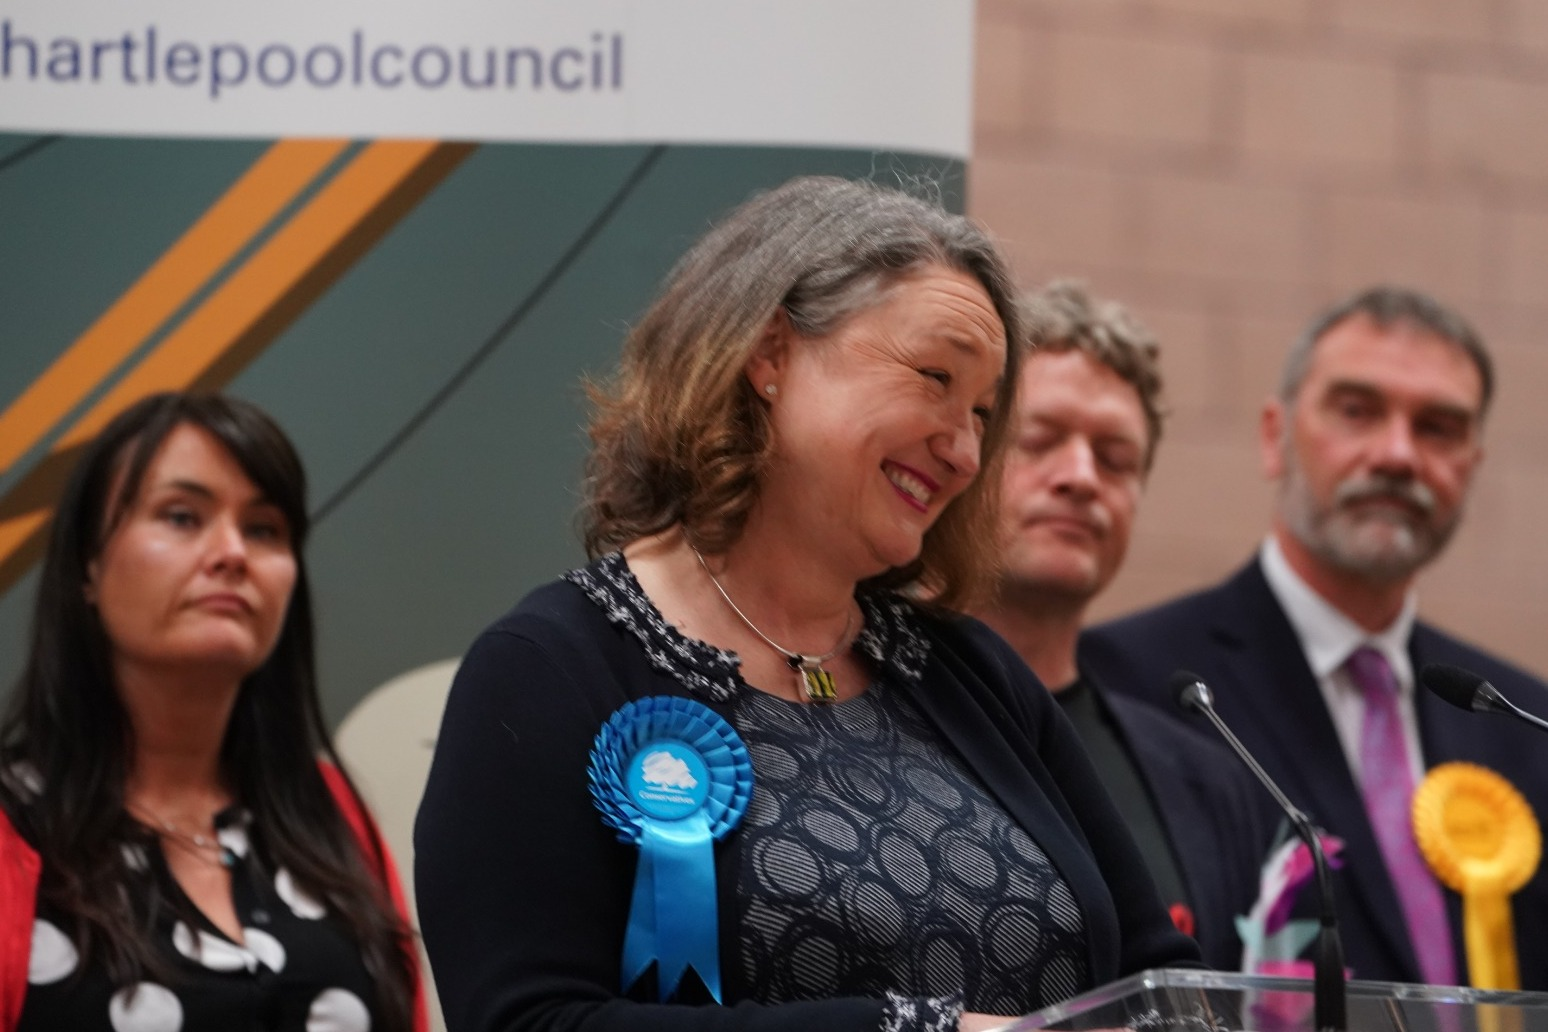 Blow for Starmer as Hartlepool elects Tory MP for first time in a generation